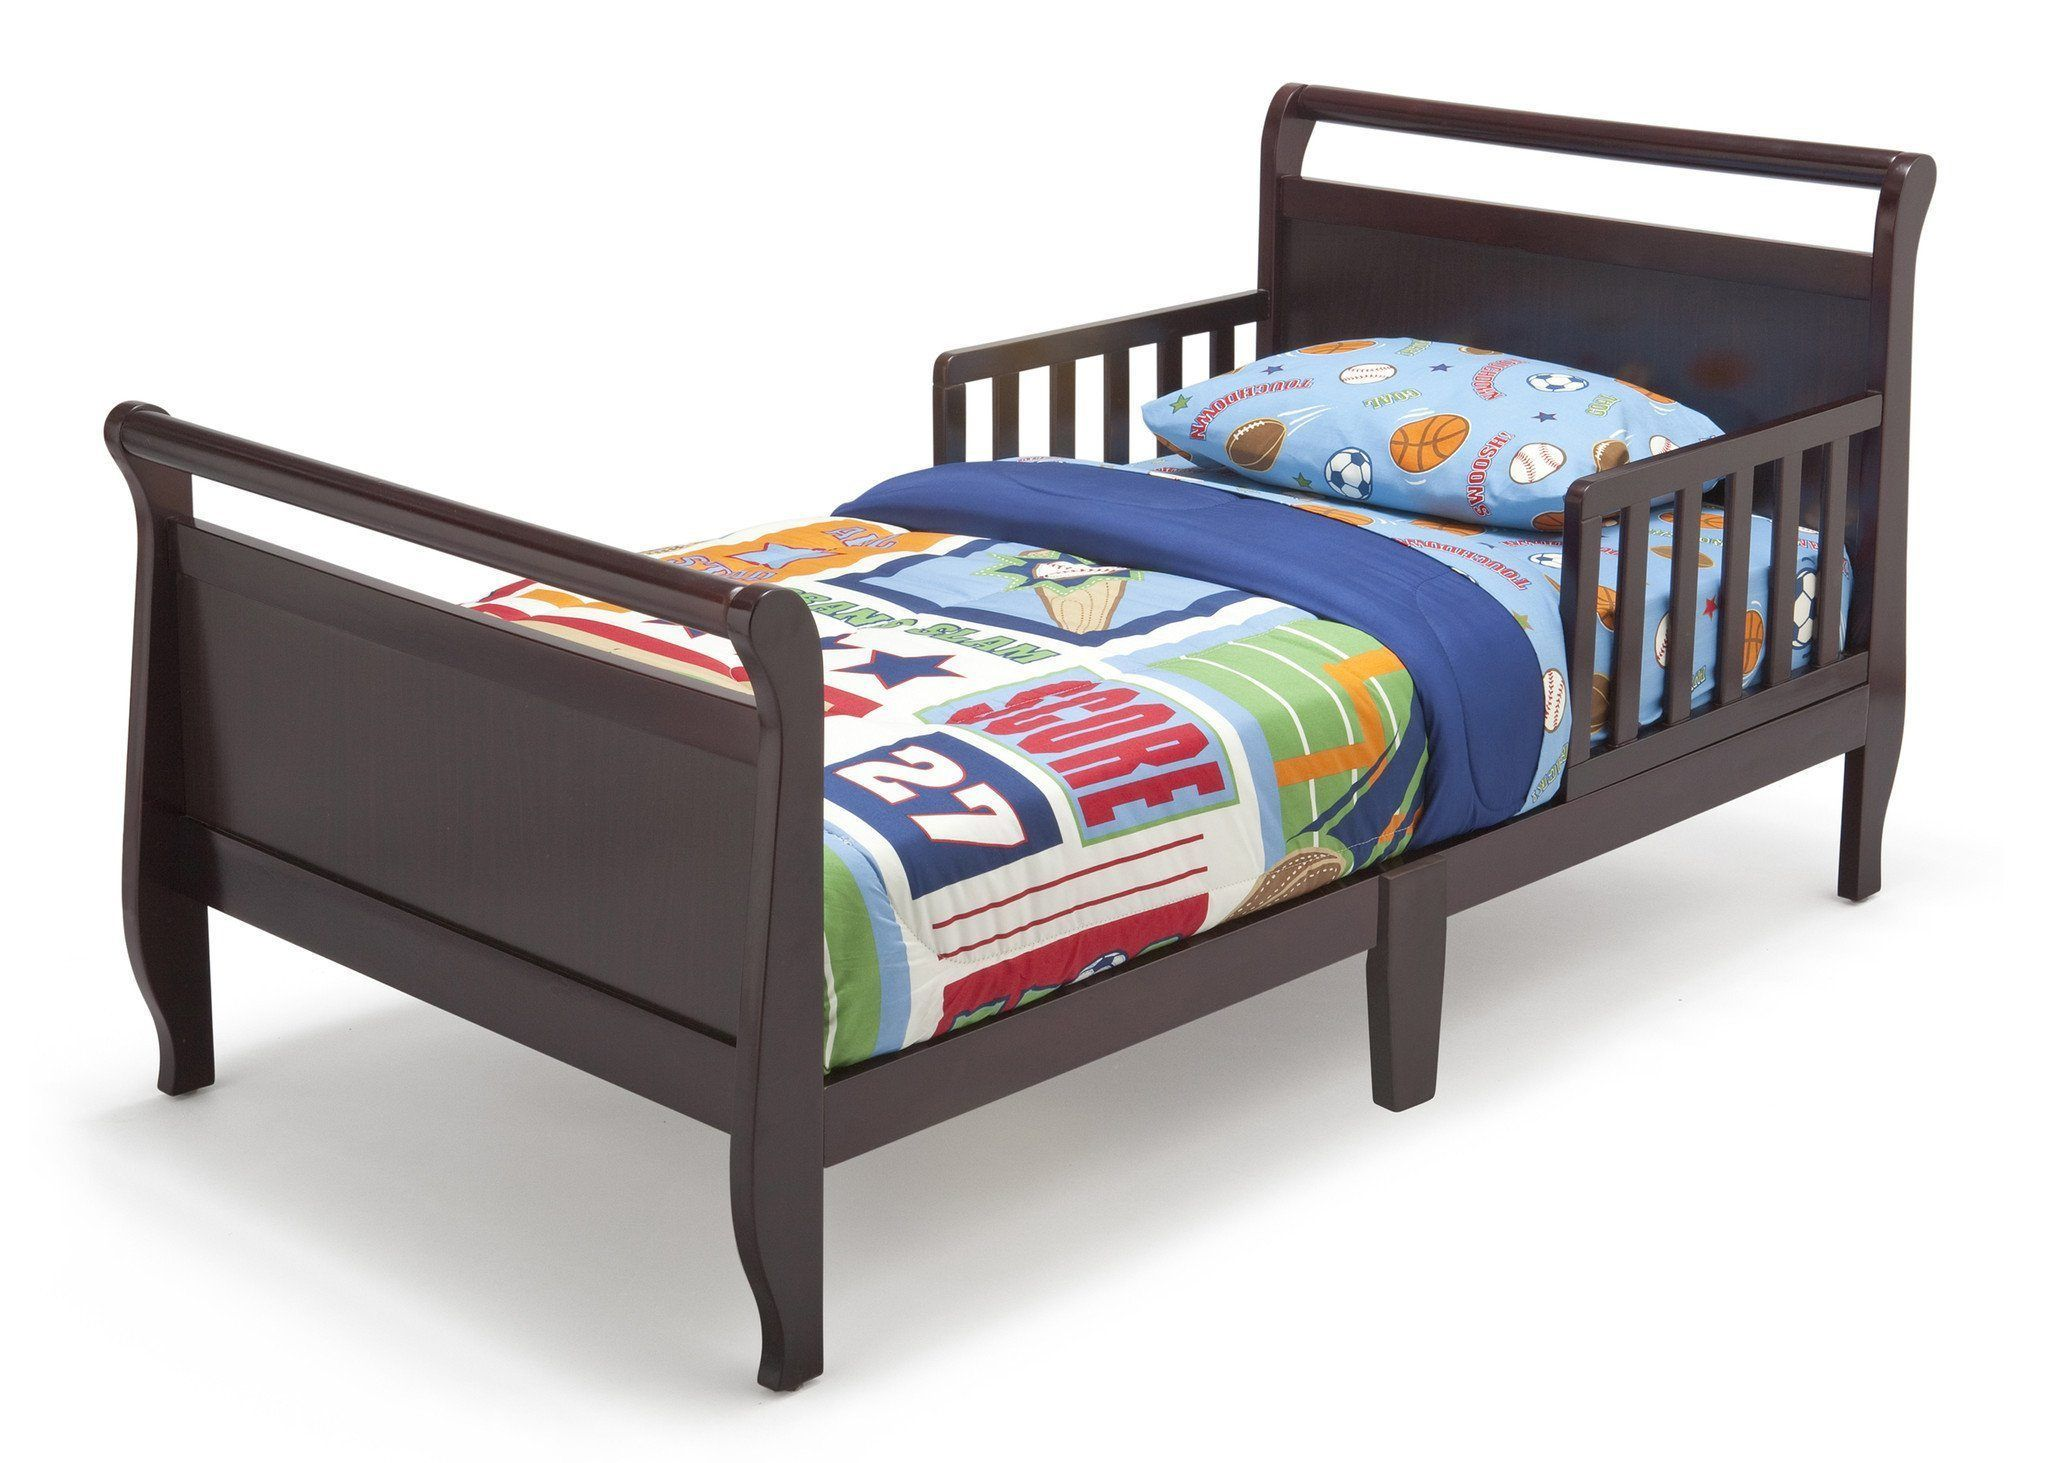 - China Wooden Sleigh Toddler Bed - China Kids Furniture, Wooden Bed